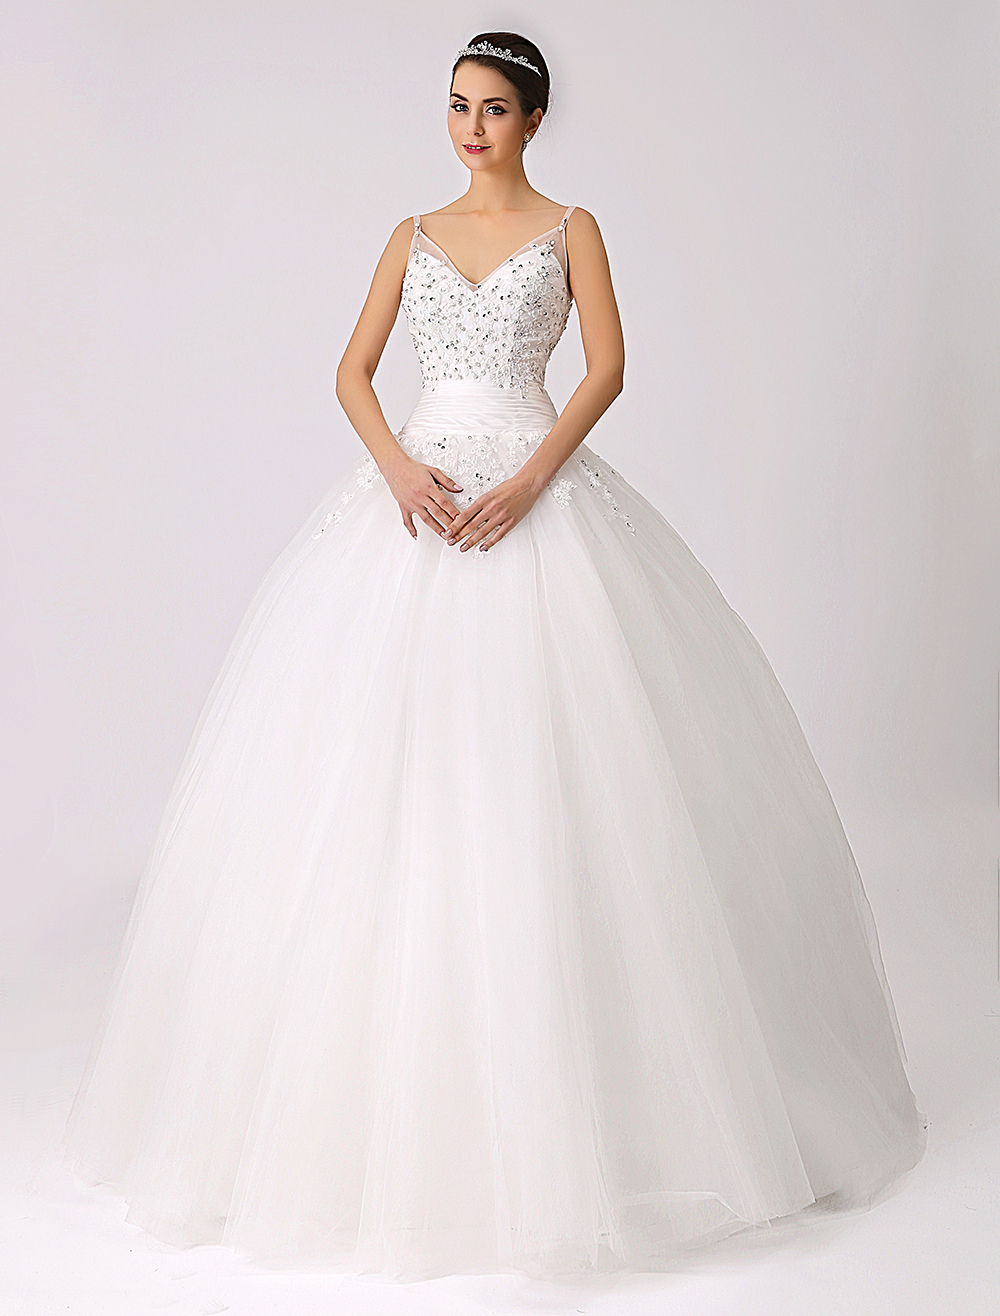 Spaghetti Straps Princess Wedding Dress with Beaded Lace Applique ...